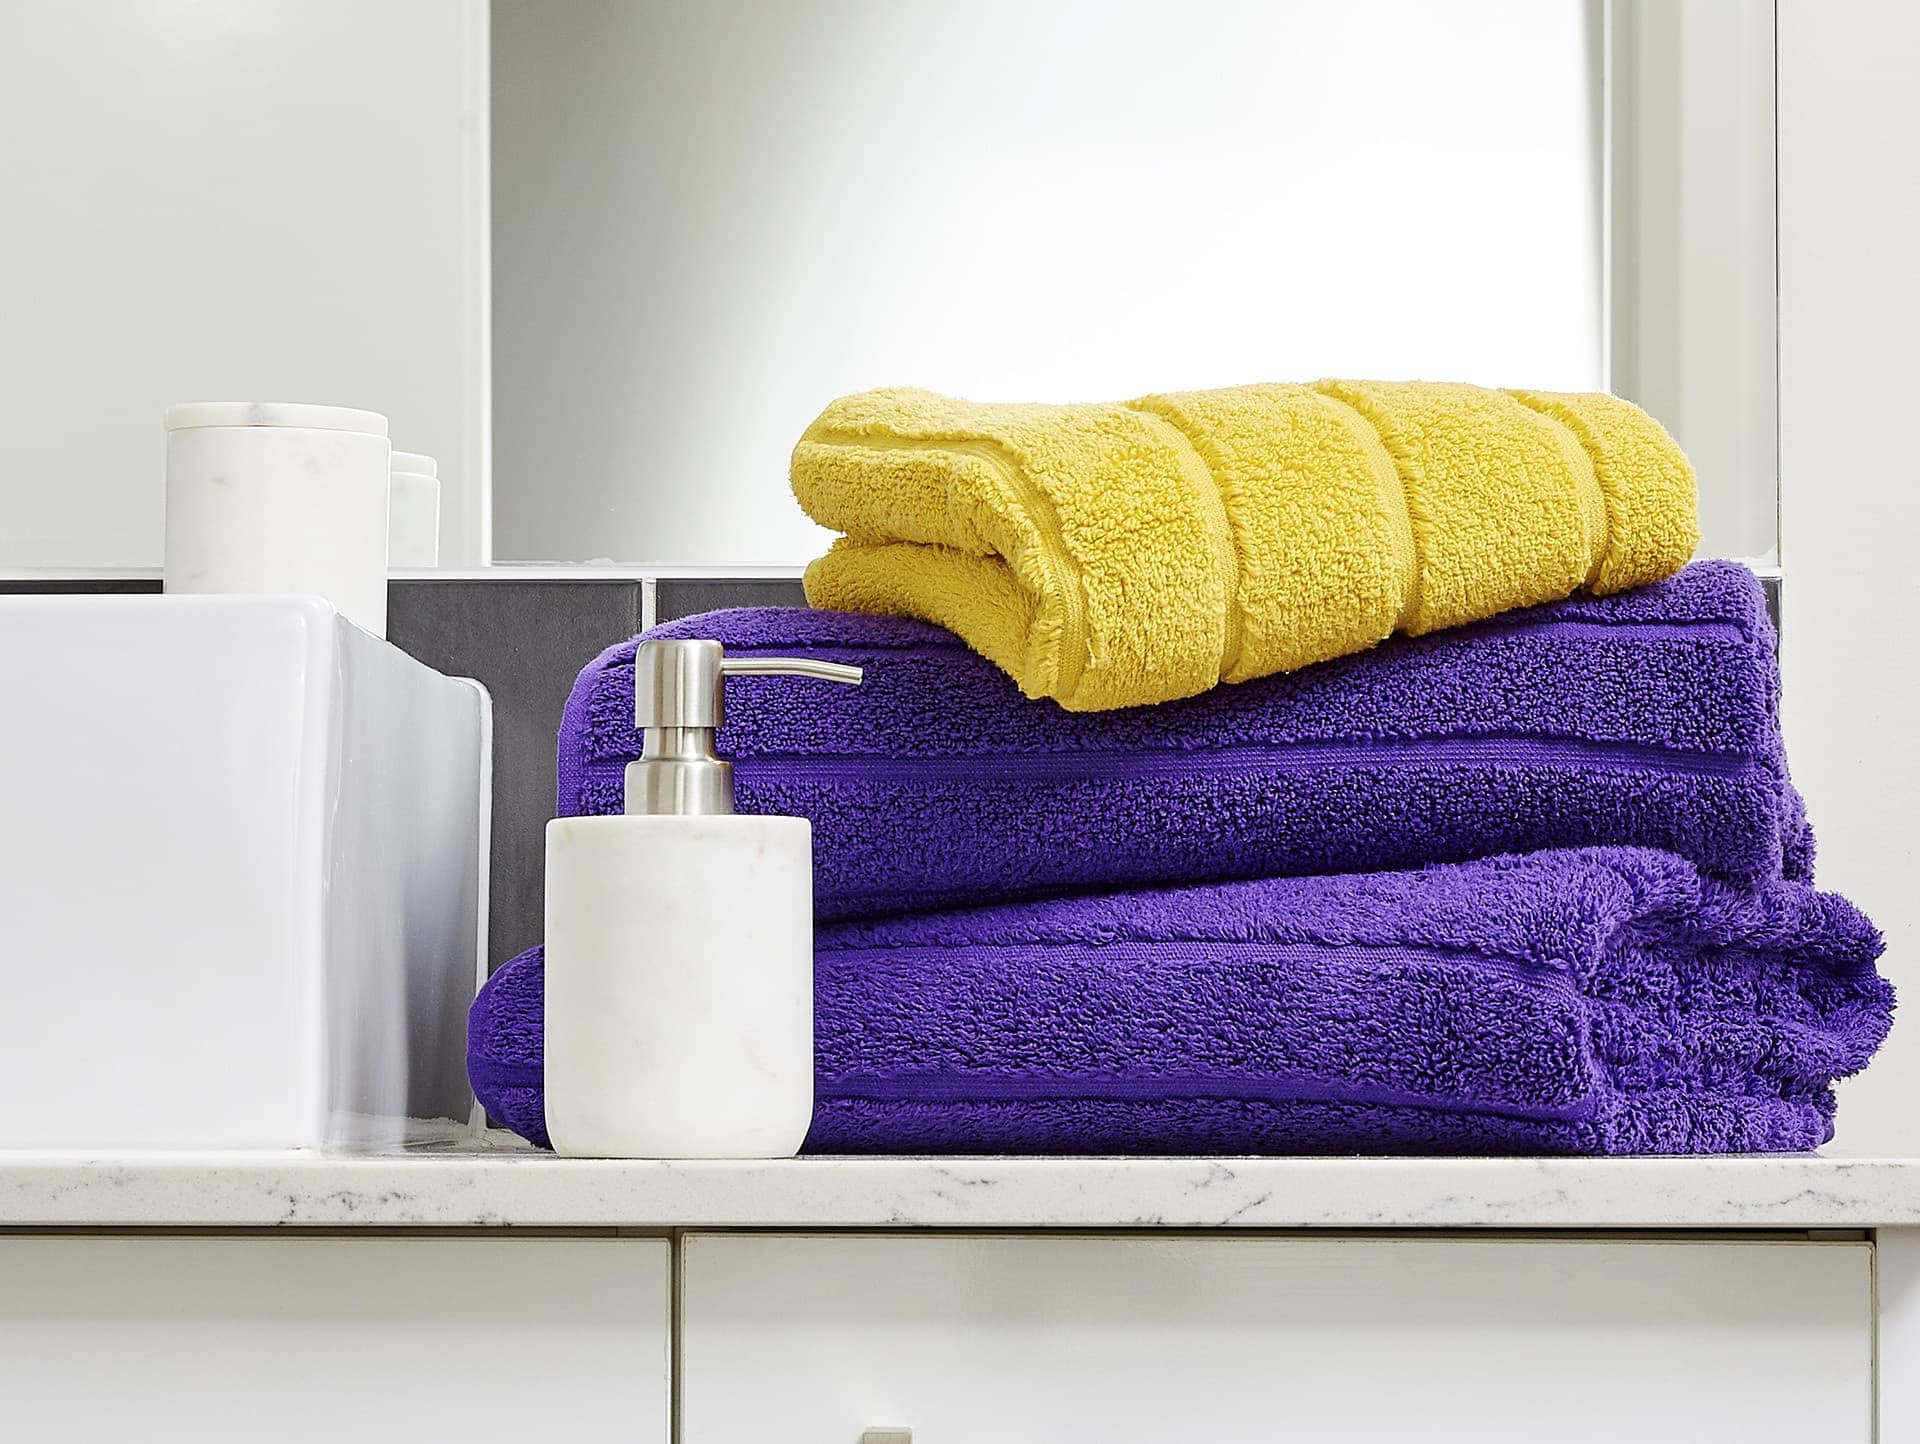 yellow and purple towels stacked with marble soap dispenser from lorraine lea